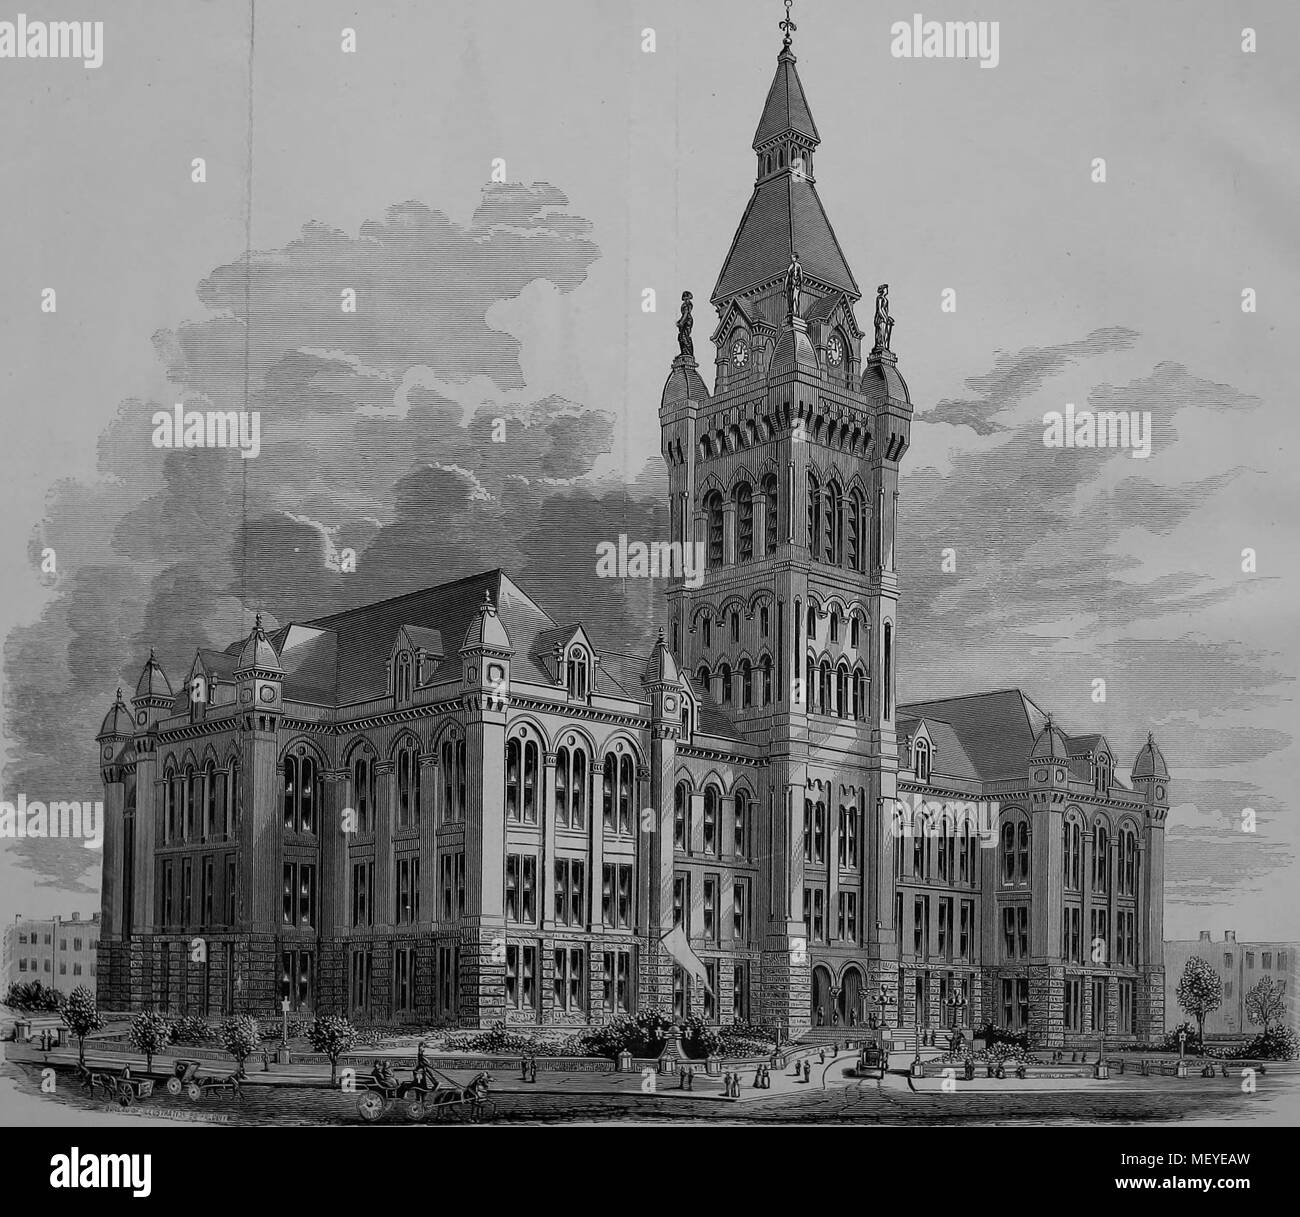 Engraving of the city hall building, Buffalo, New York, 1876. Courtesy Internet Archive. () - Stock Image